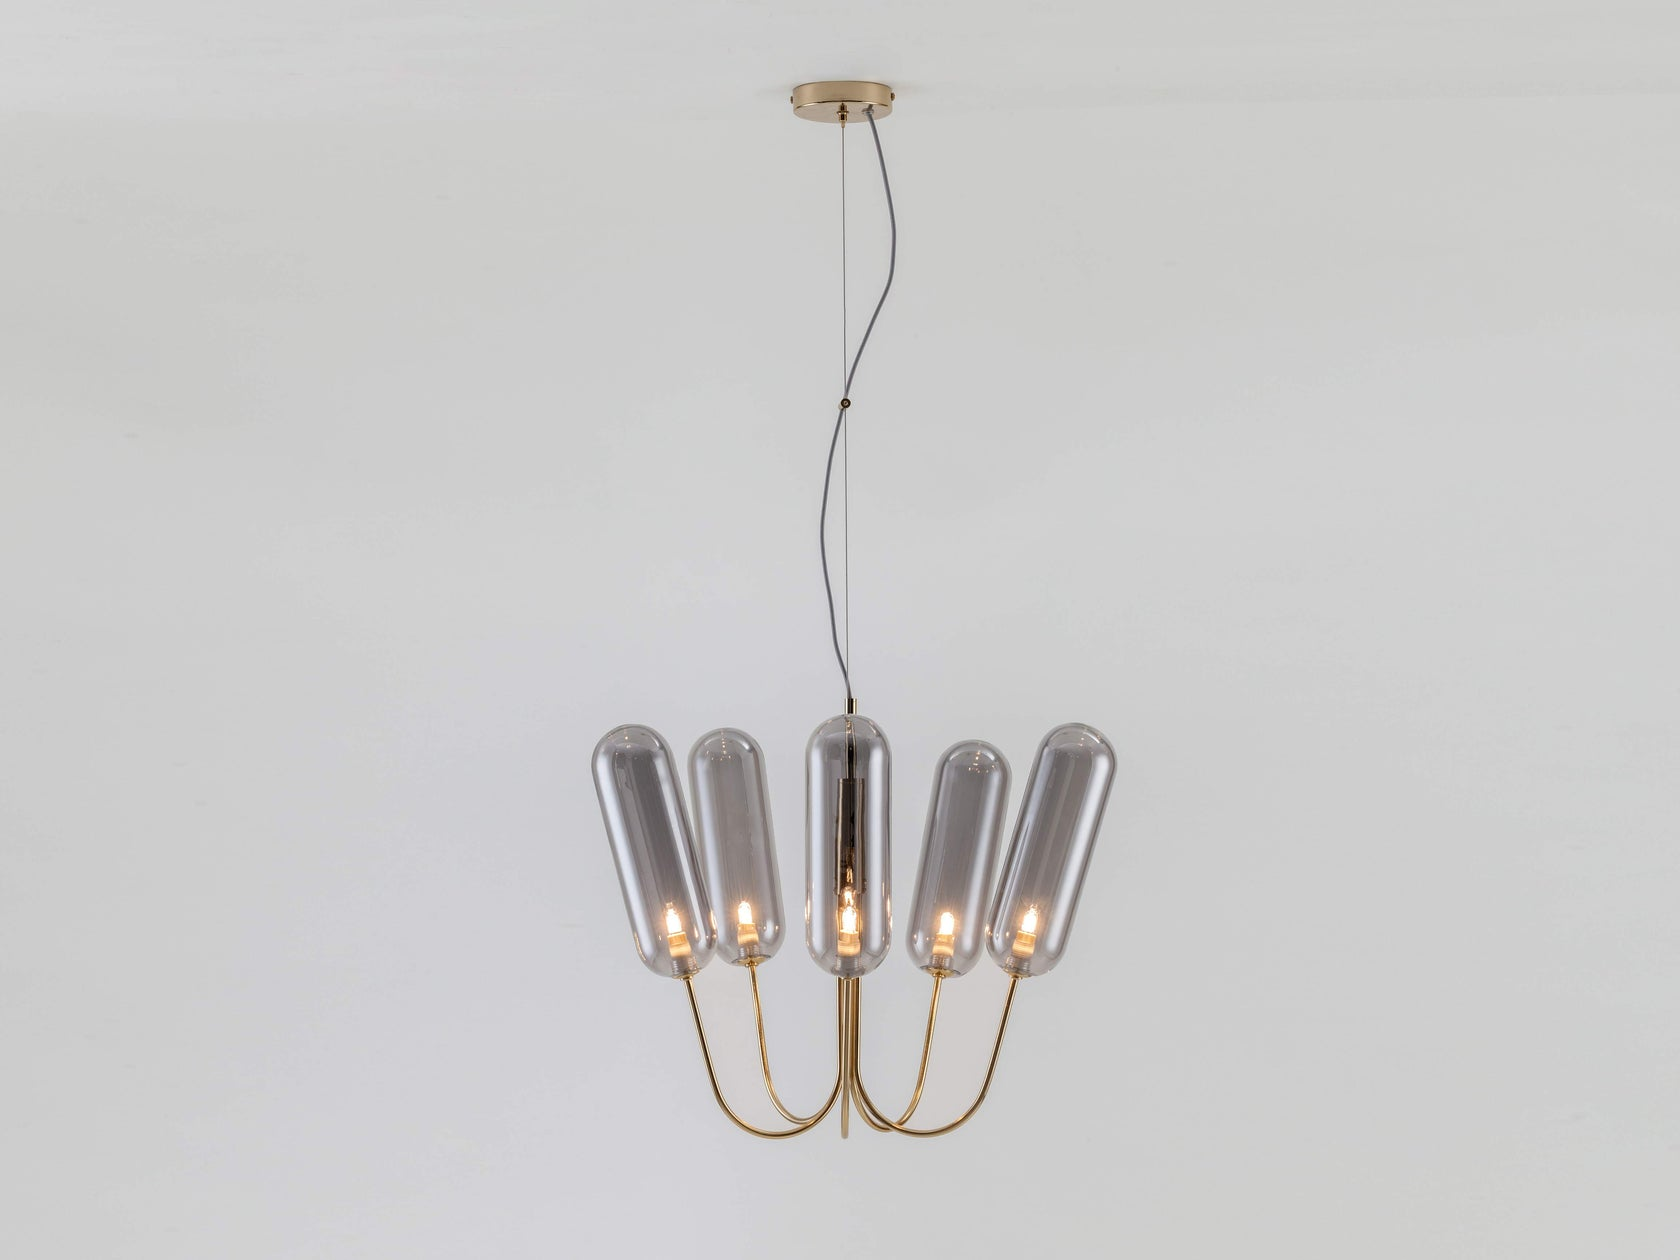 5 light pill chandelier brass | on | houseof.com